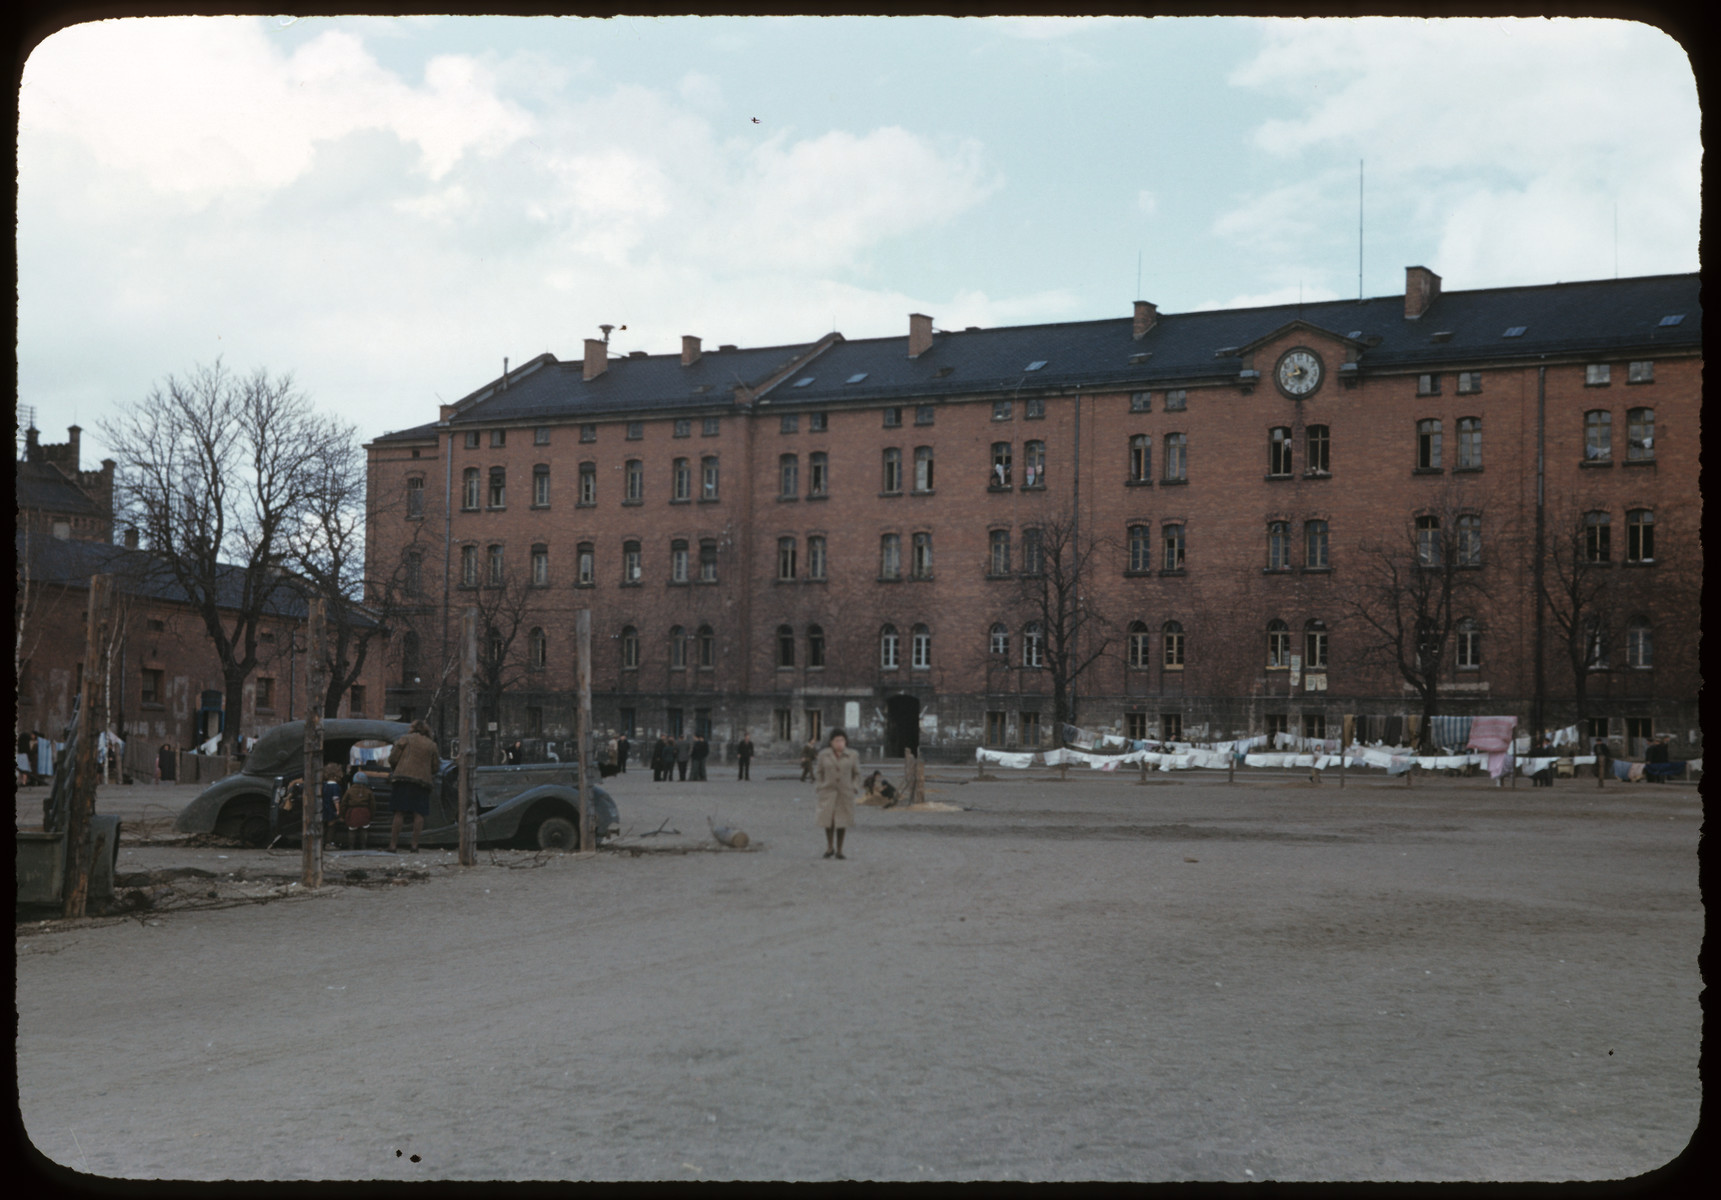 View of the Bamberg displaced person's camp (Uhlan barracks) in Germany.